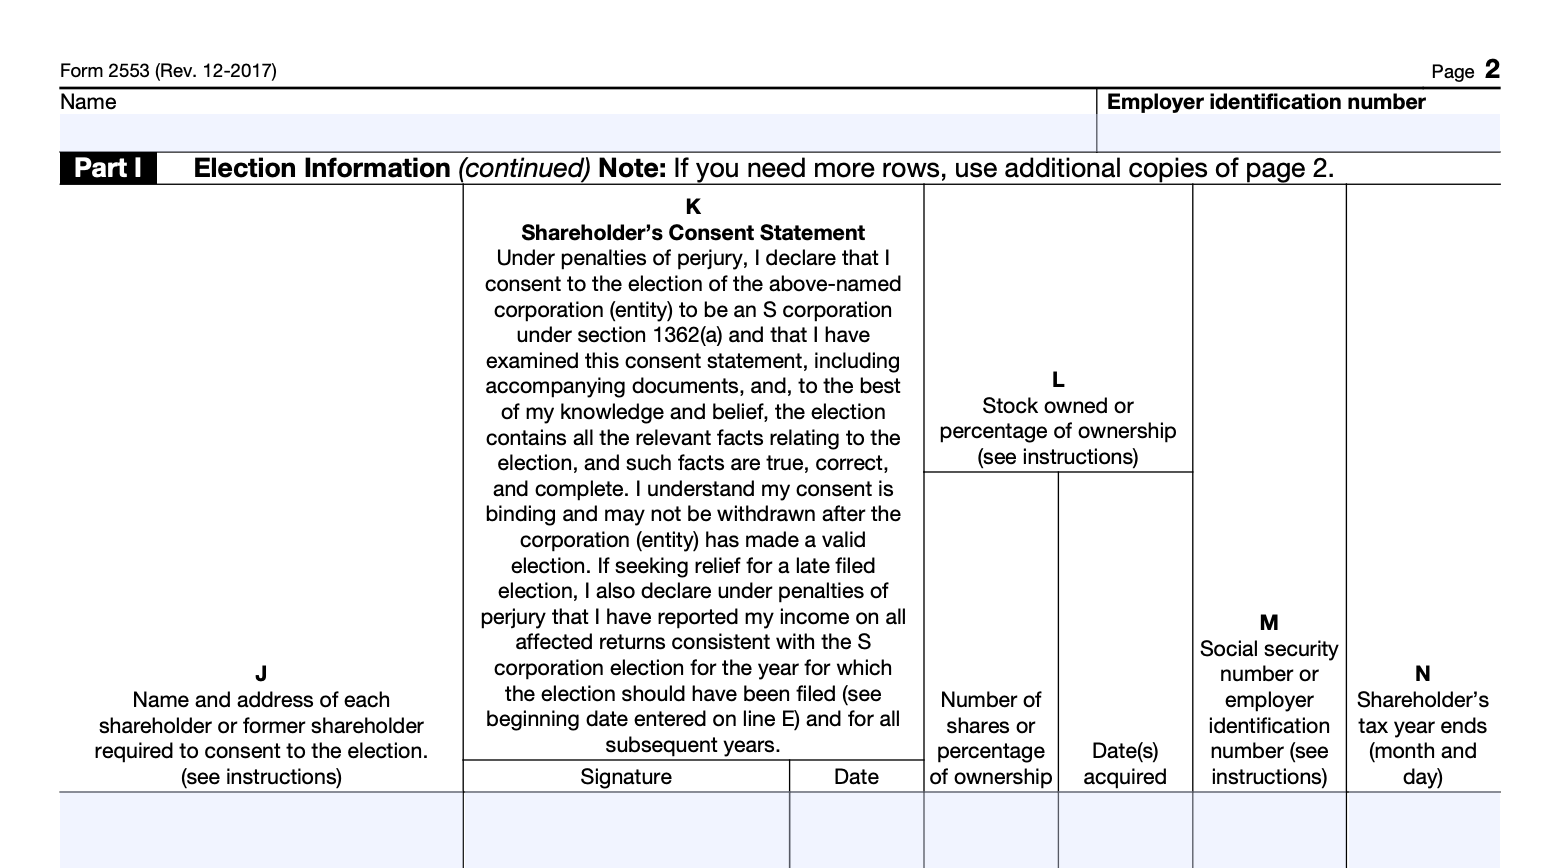 irs form 2553 part 1.png